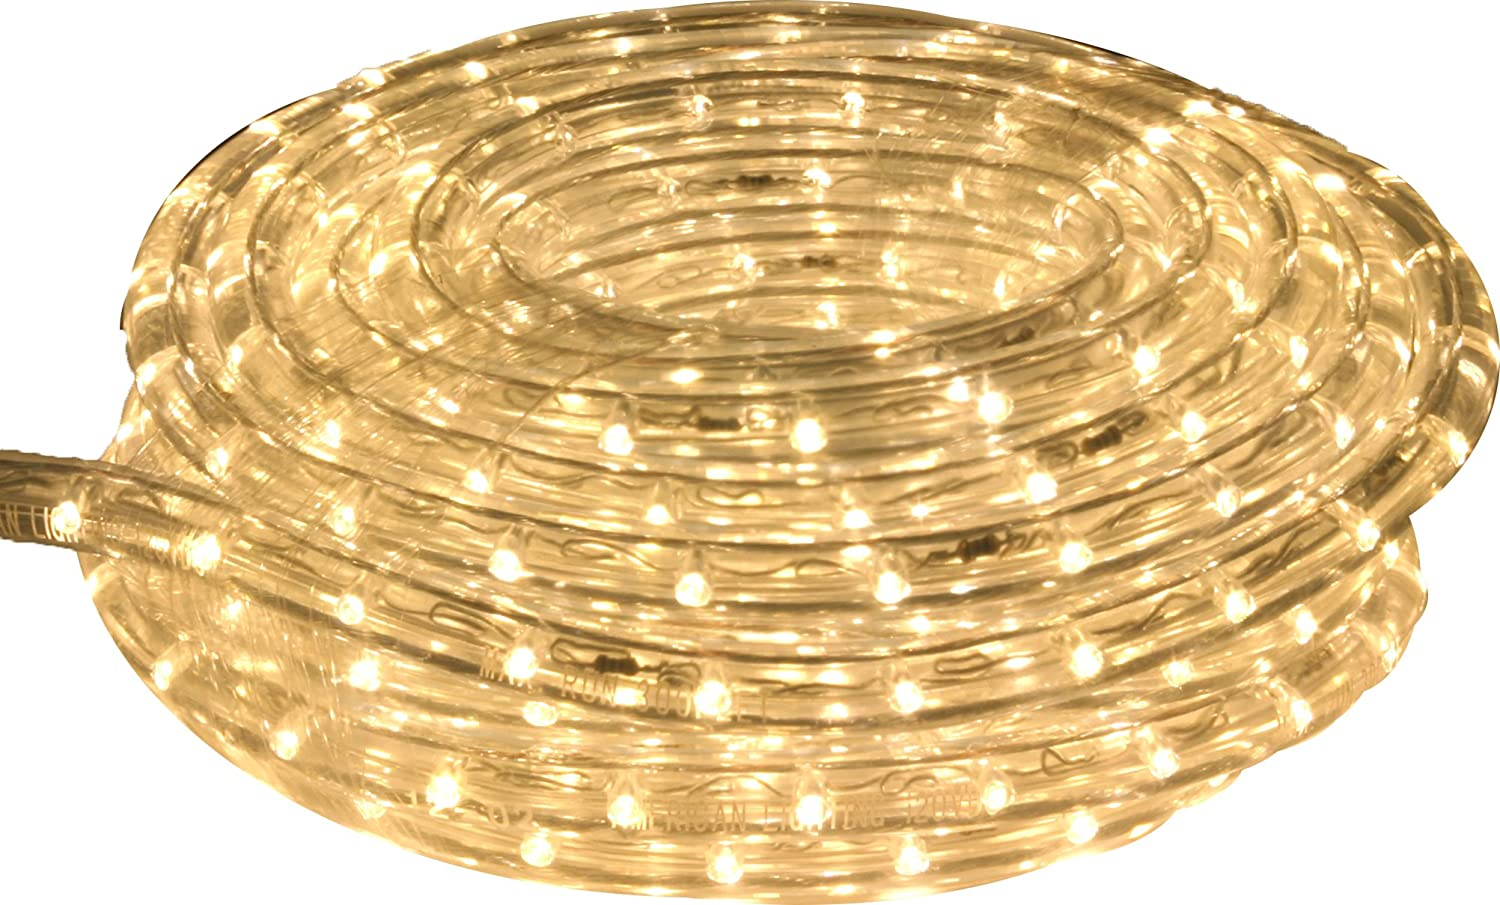 Amazon american lighting 15 foot warm white led flexbrite rope amazon american lighting 15 foot warm white led flexbrite rope light kit with mounting clips 120 volt 12 inch diameter lr led ww 15 home mozeypictures